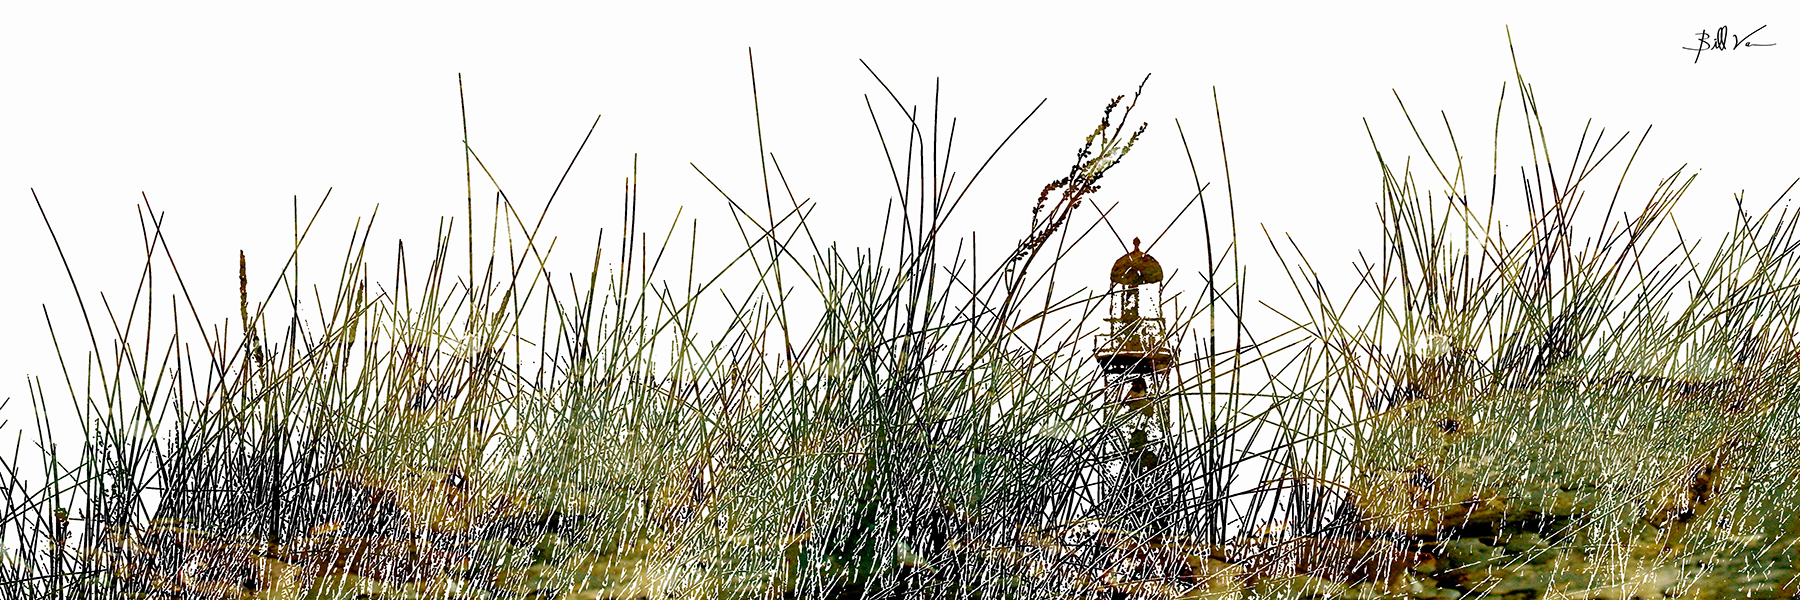 Lighthouse Grass